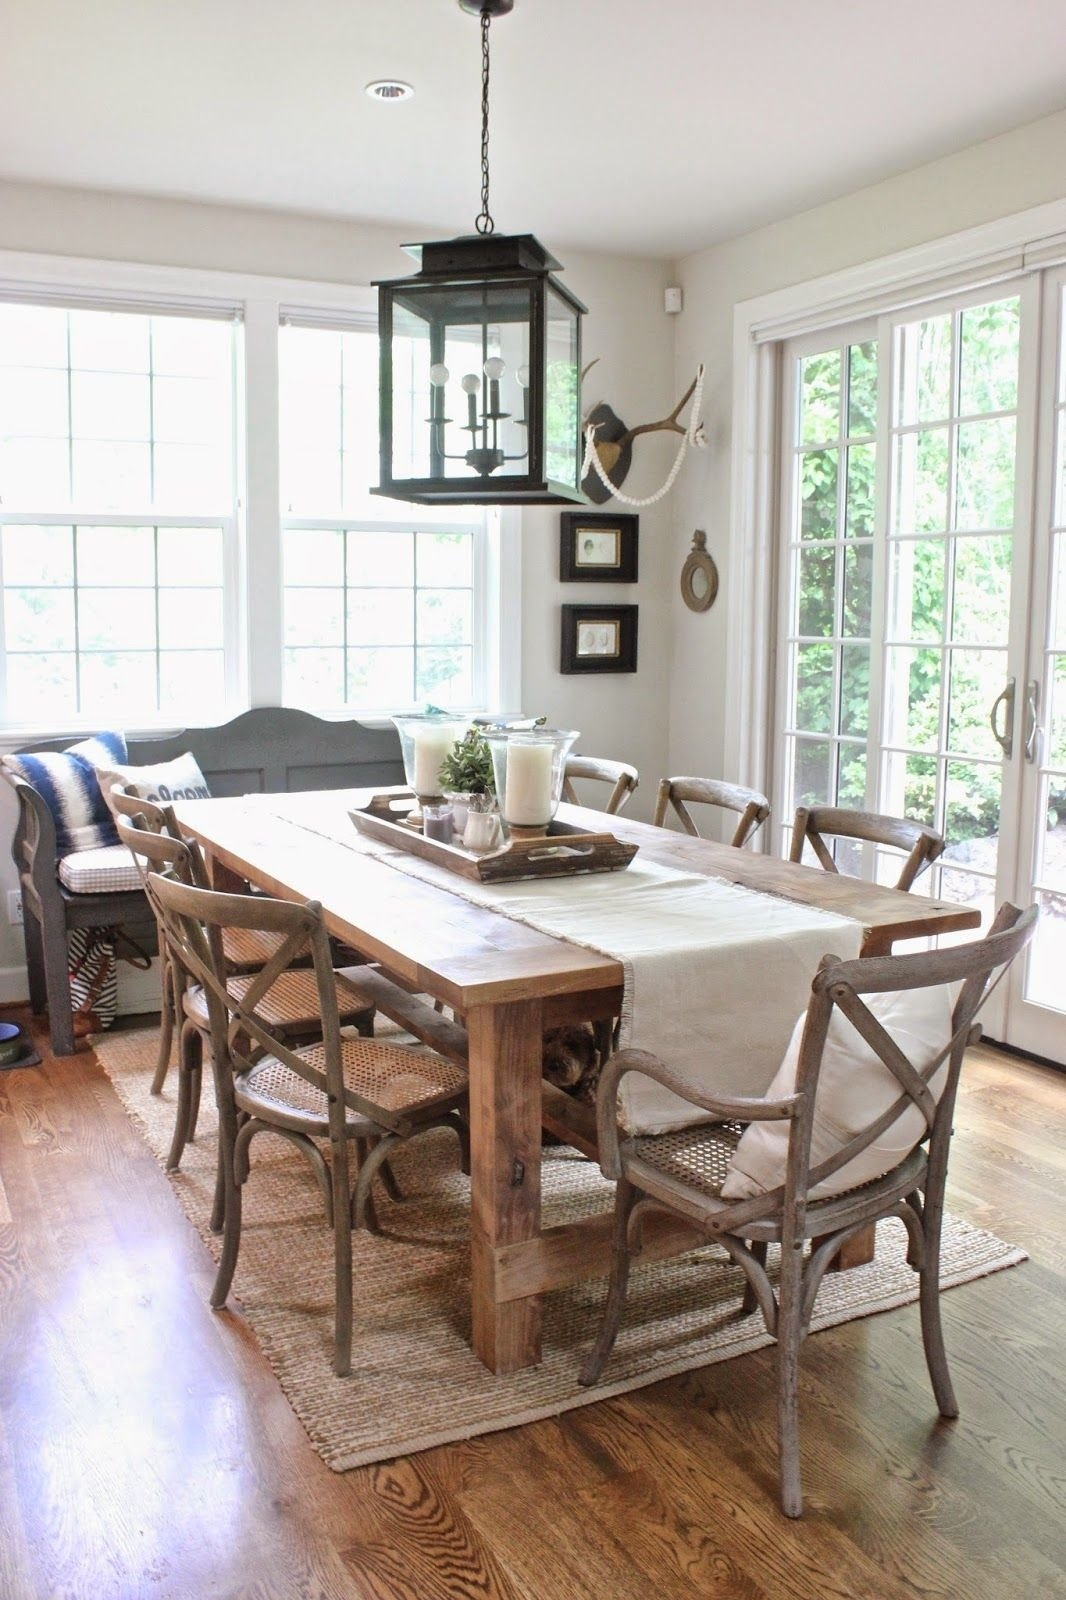 10 Lovable Centerpiece Ideas For Dining Room Table our home the spring version spring room and centerpieces 2020